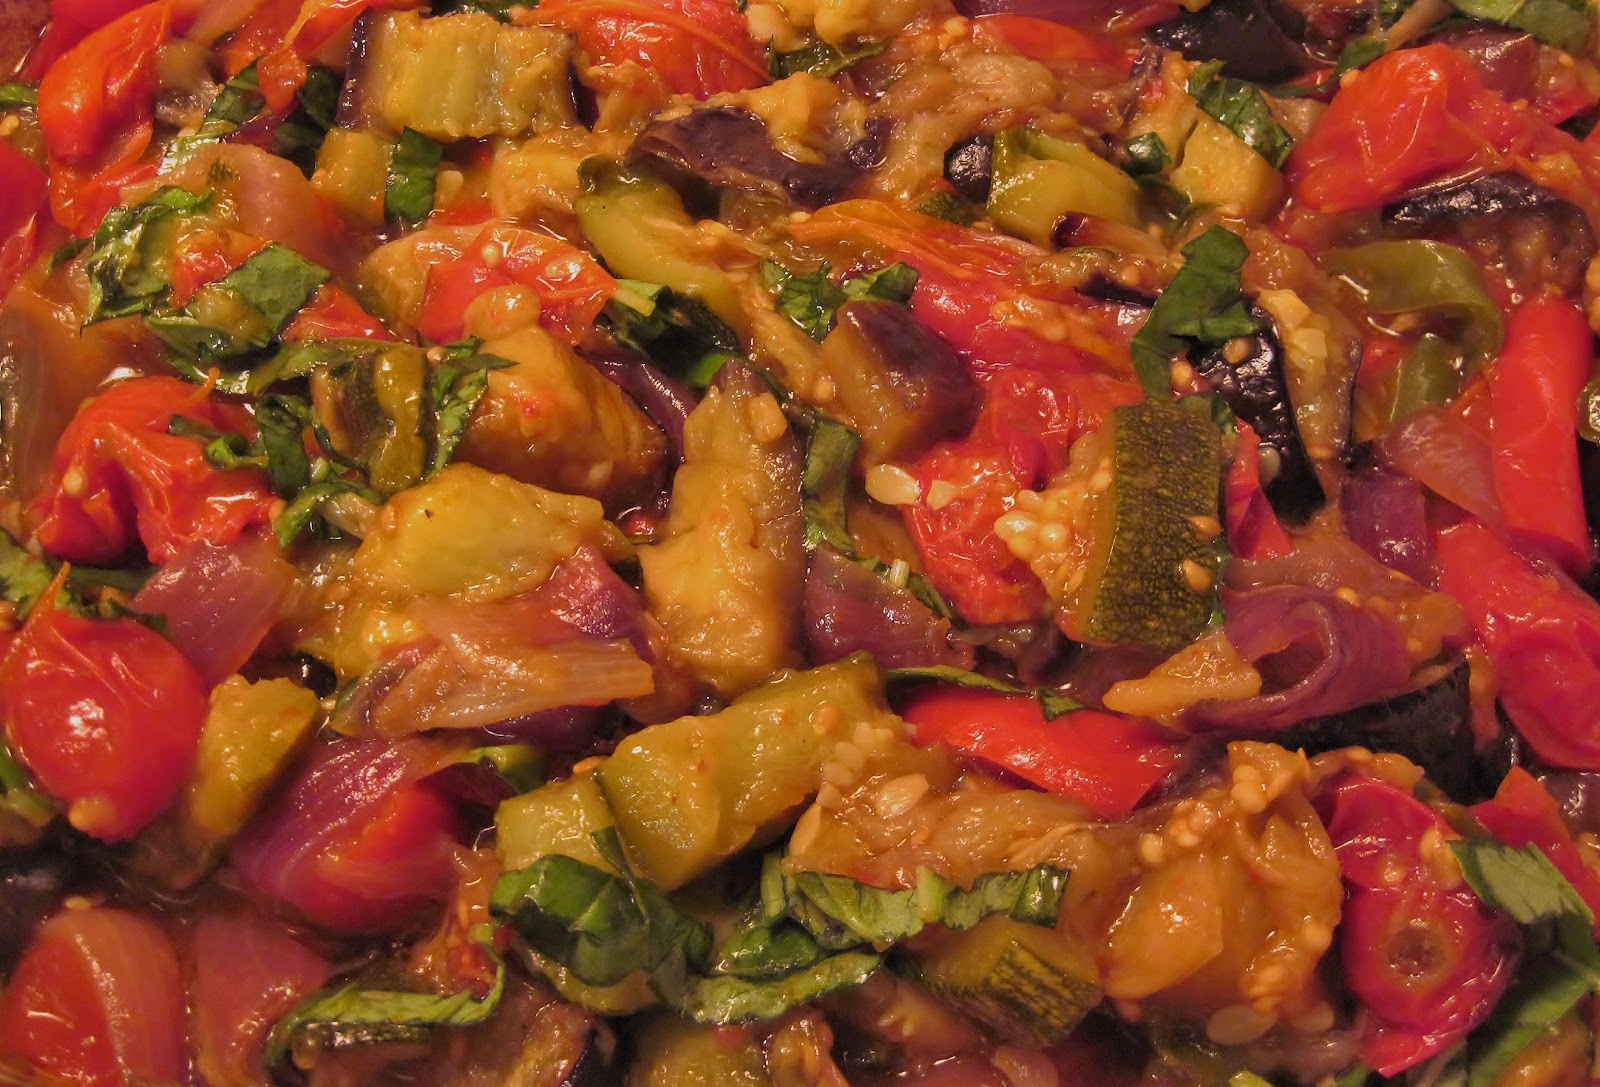 Carolina Sauce Company: Gloria's Rustic Roasted Ratatouille